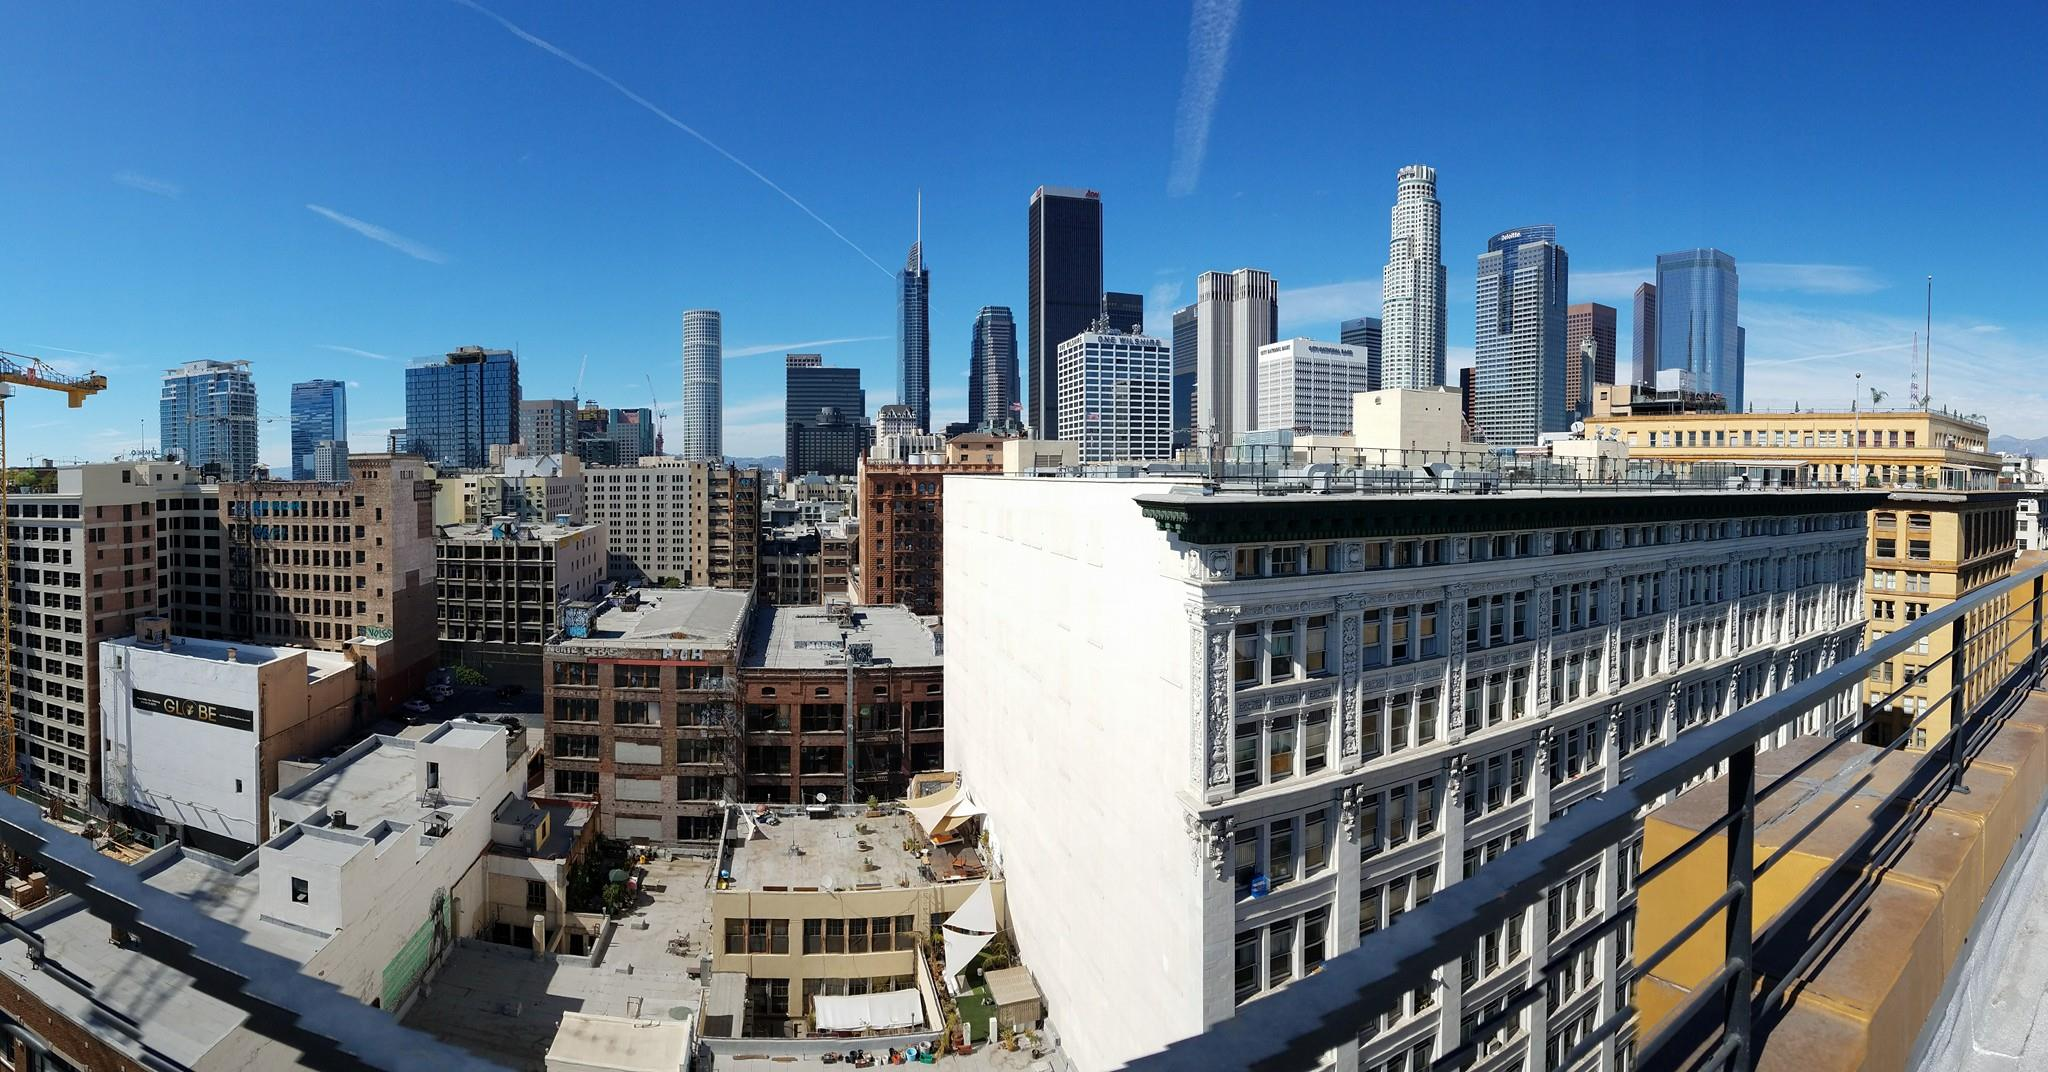 dtla condos for sale downtown la lofts for sale